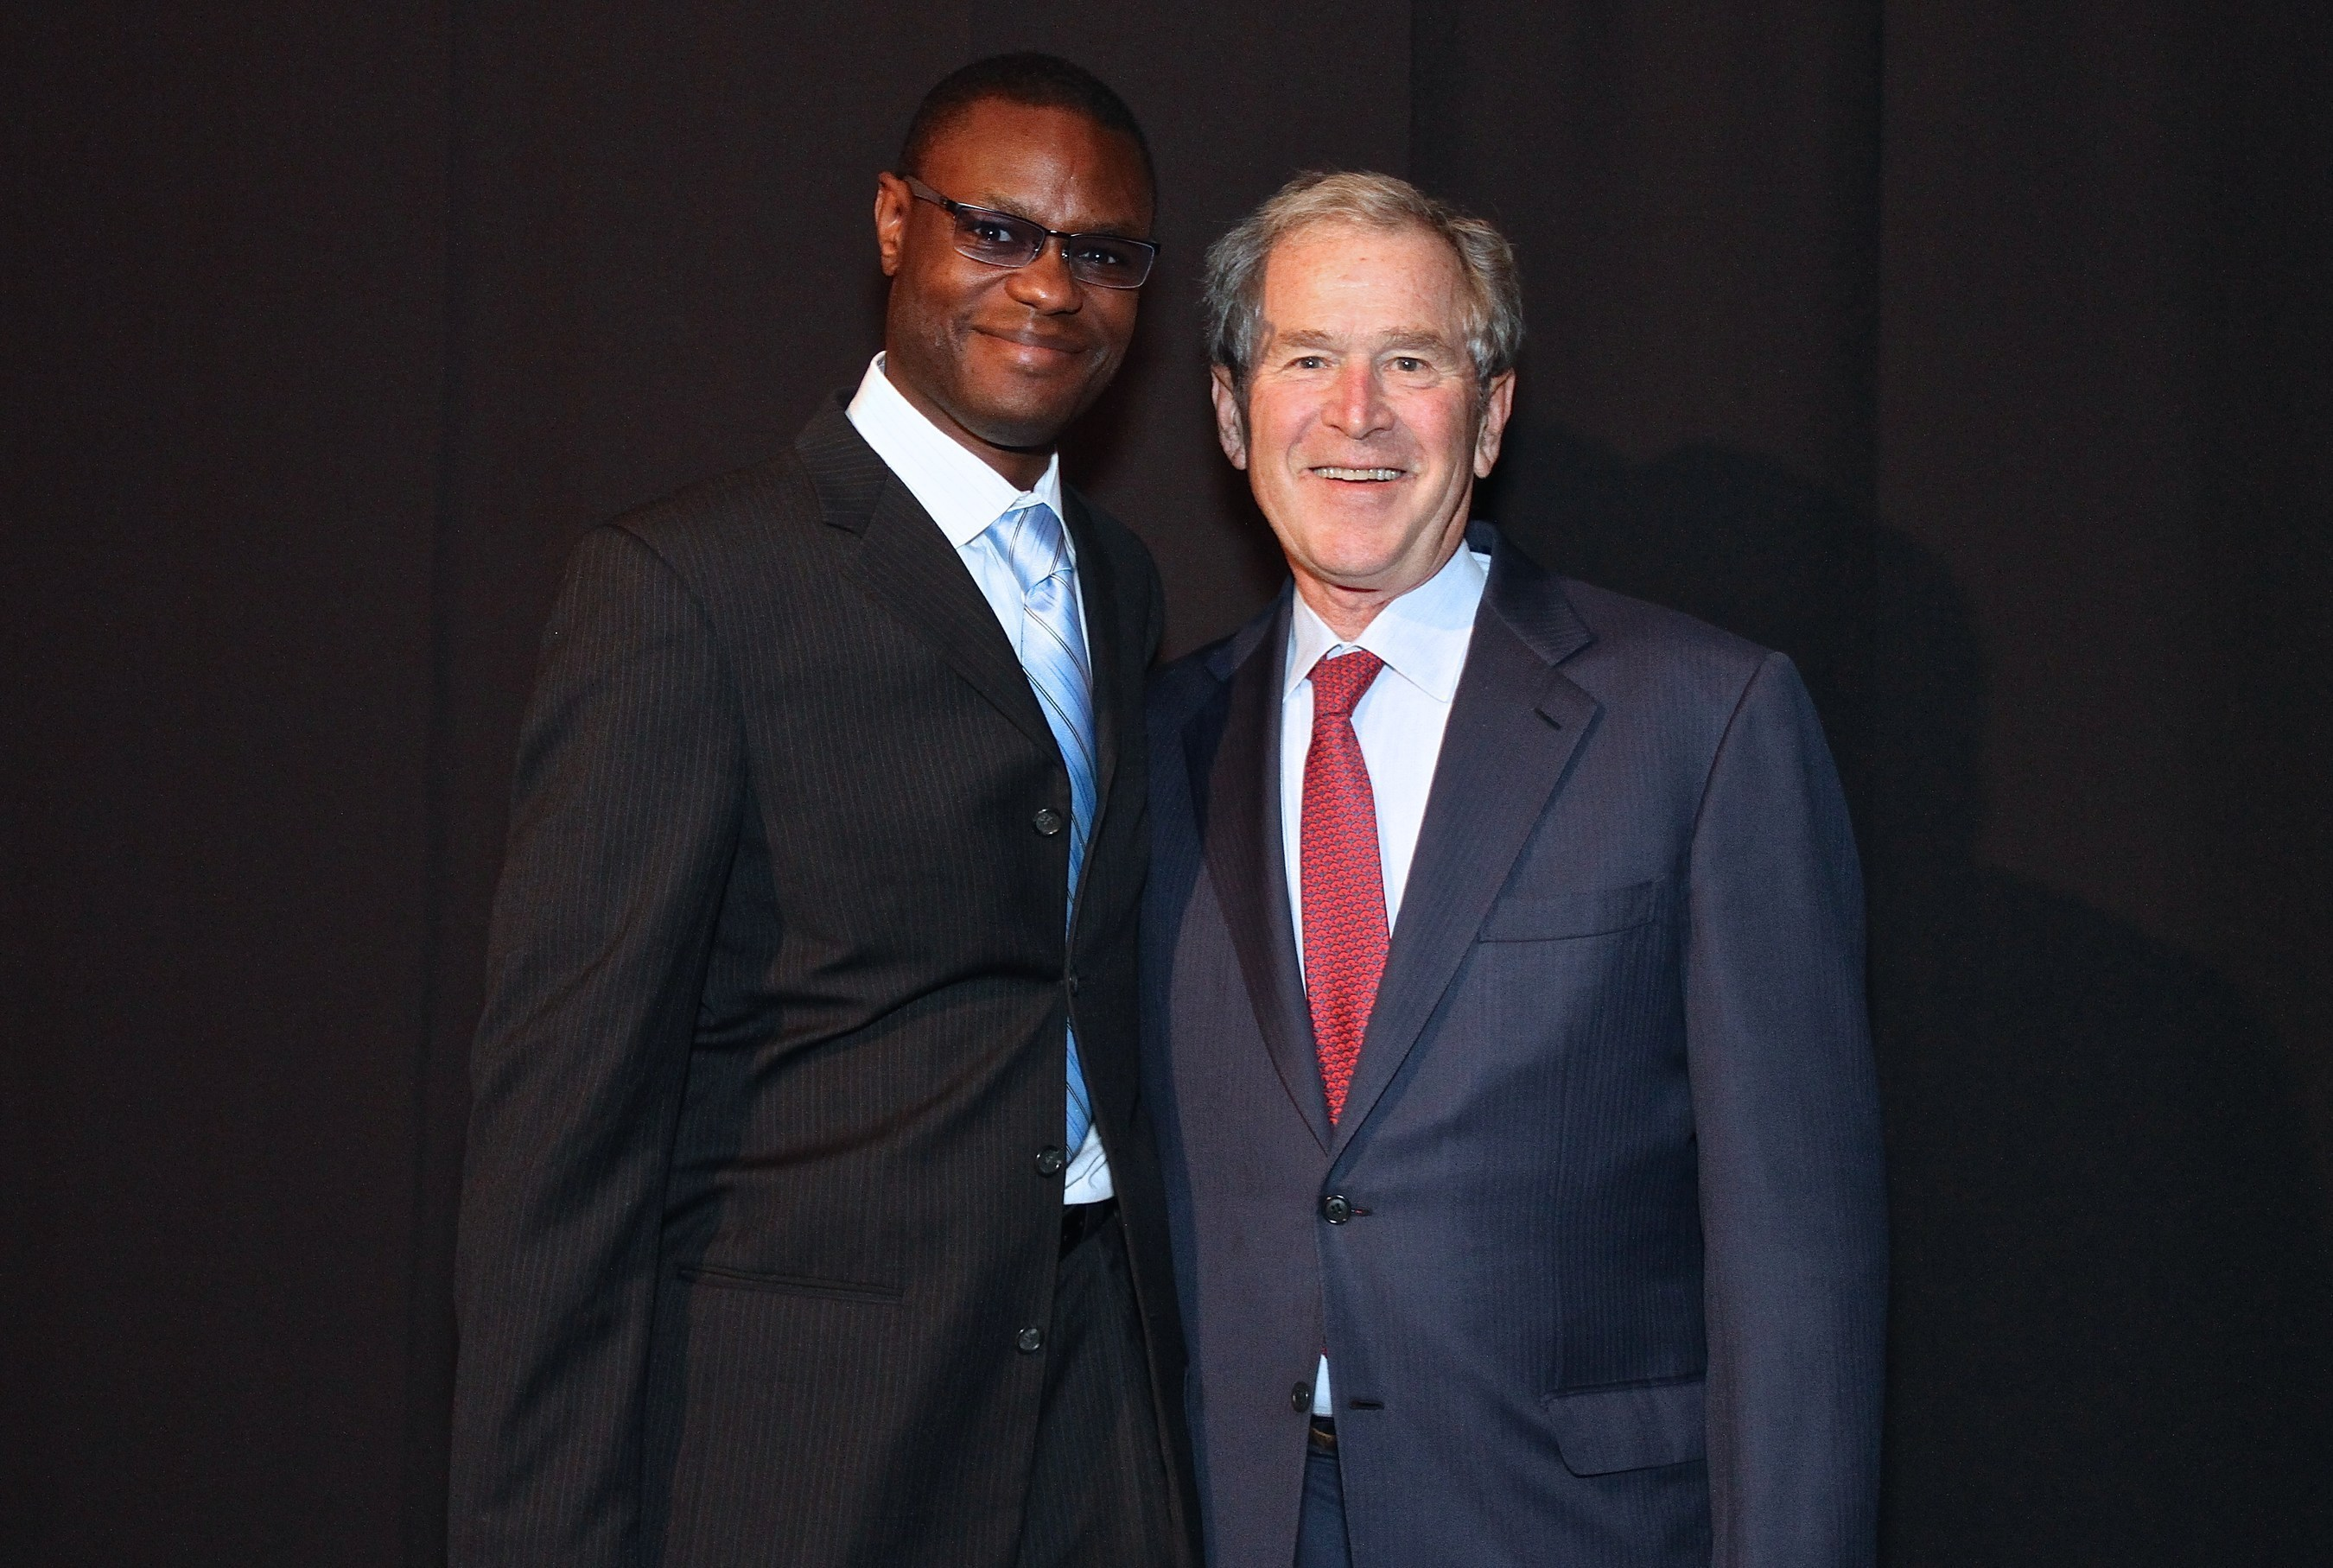 Arthur Wylie (entrepreneur, film producer, philanthropist) and  President George W. Bush at the Inaugural Legacy Project Dinner Honoring President George W. Bush